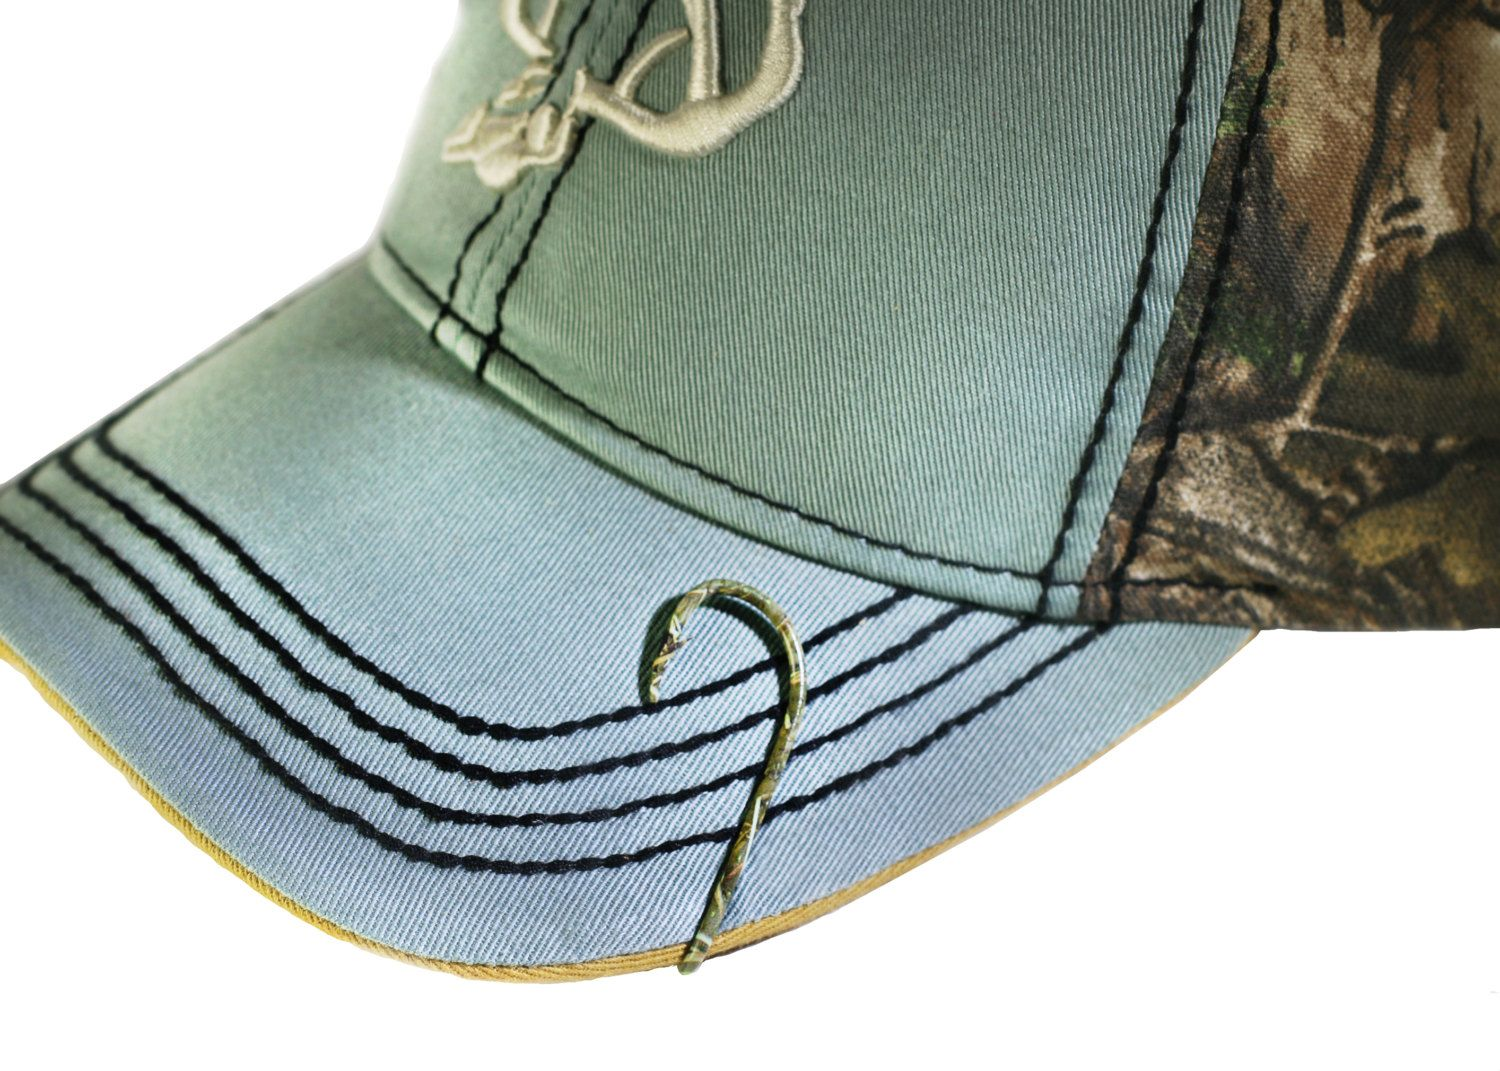 3734feb4aba685 ... online store. Camo Fish Hook Hat Pin - Hat Clip for Hat or Cap - Money  Clip/Tie Clasp - Camouflage by BTOutdoors on Etsy